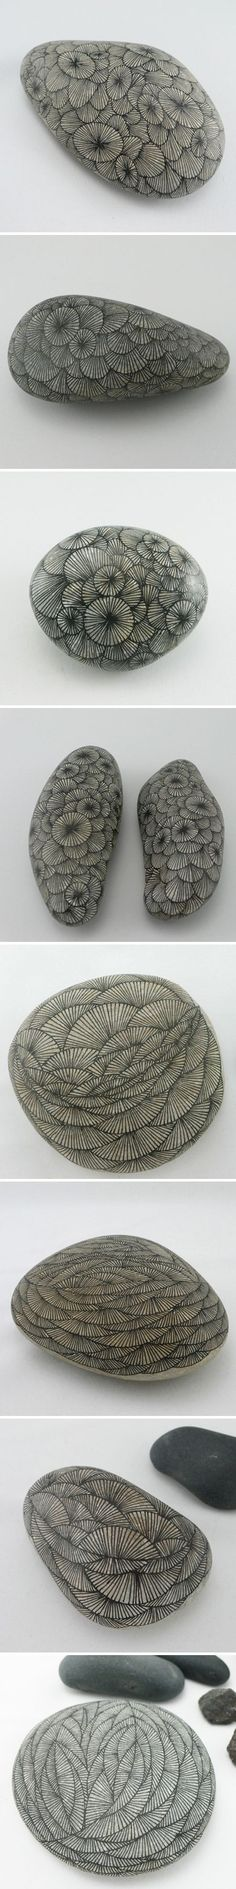 hand drawn lines on stones. one of the most simple and satisfying nature diys.